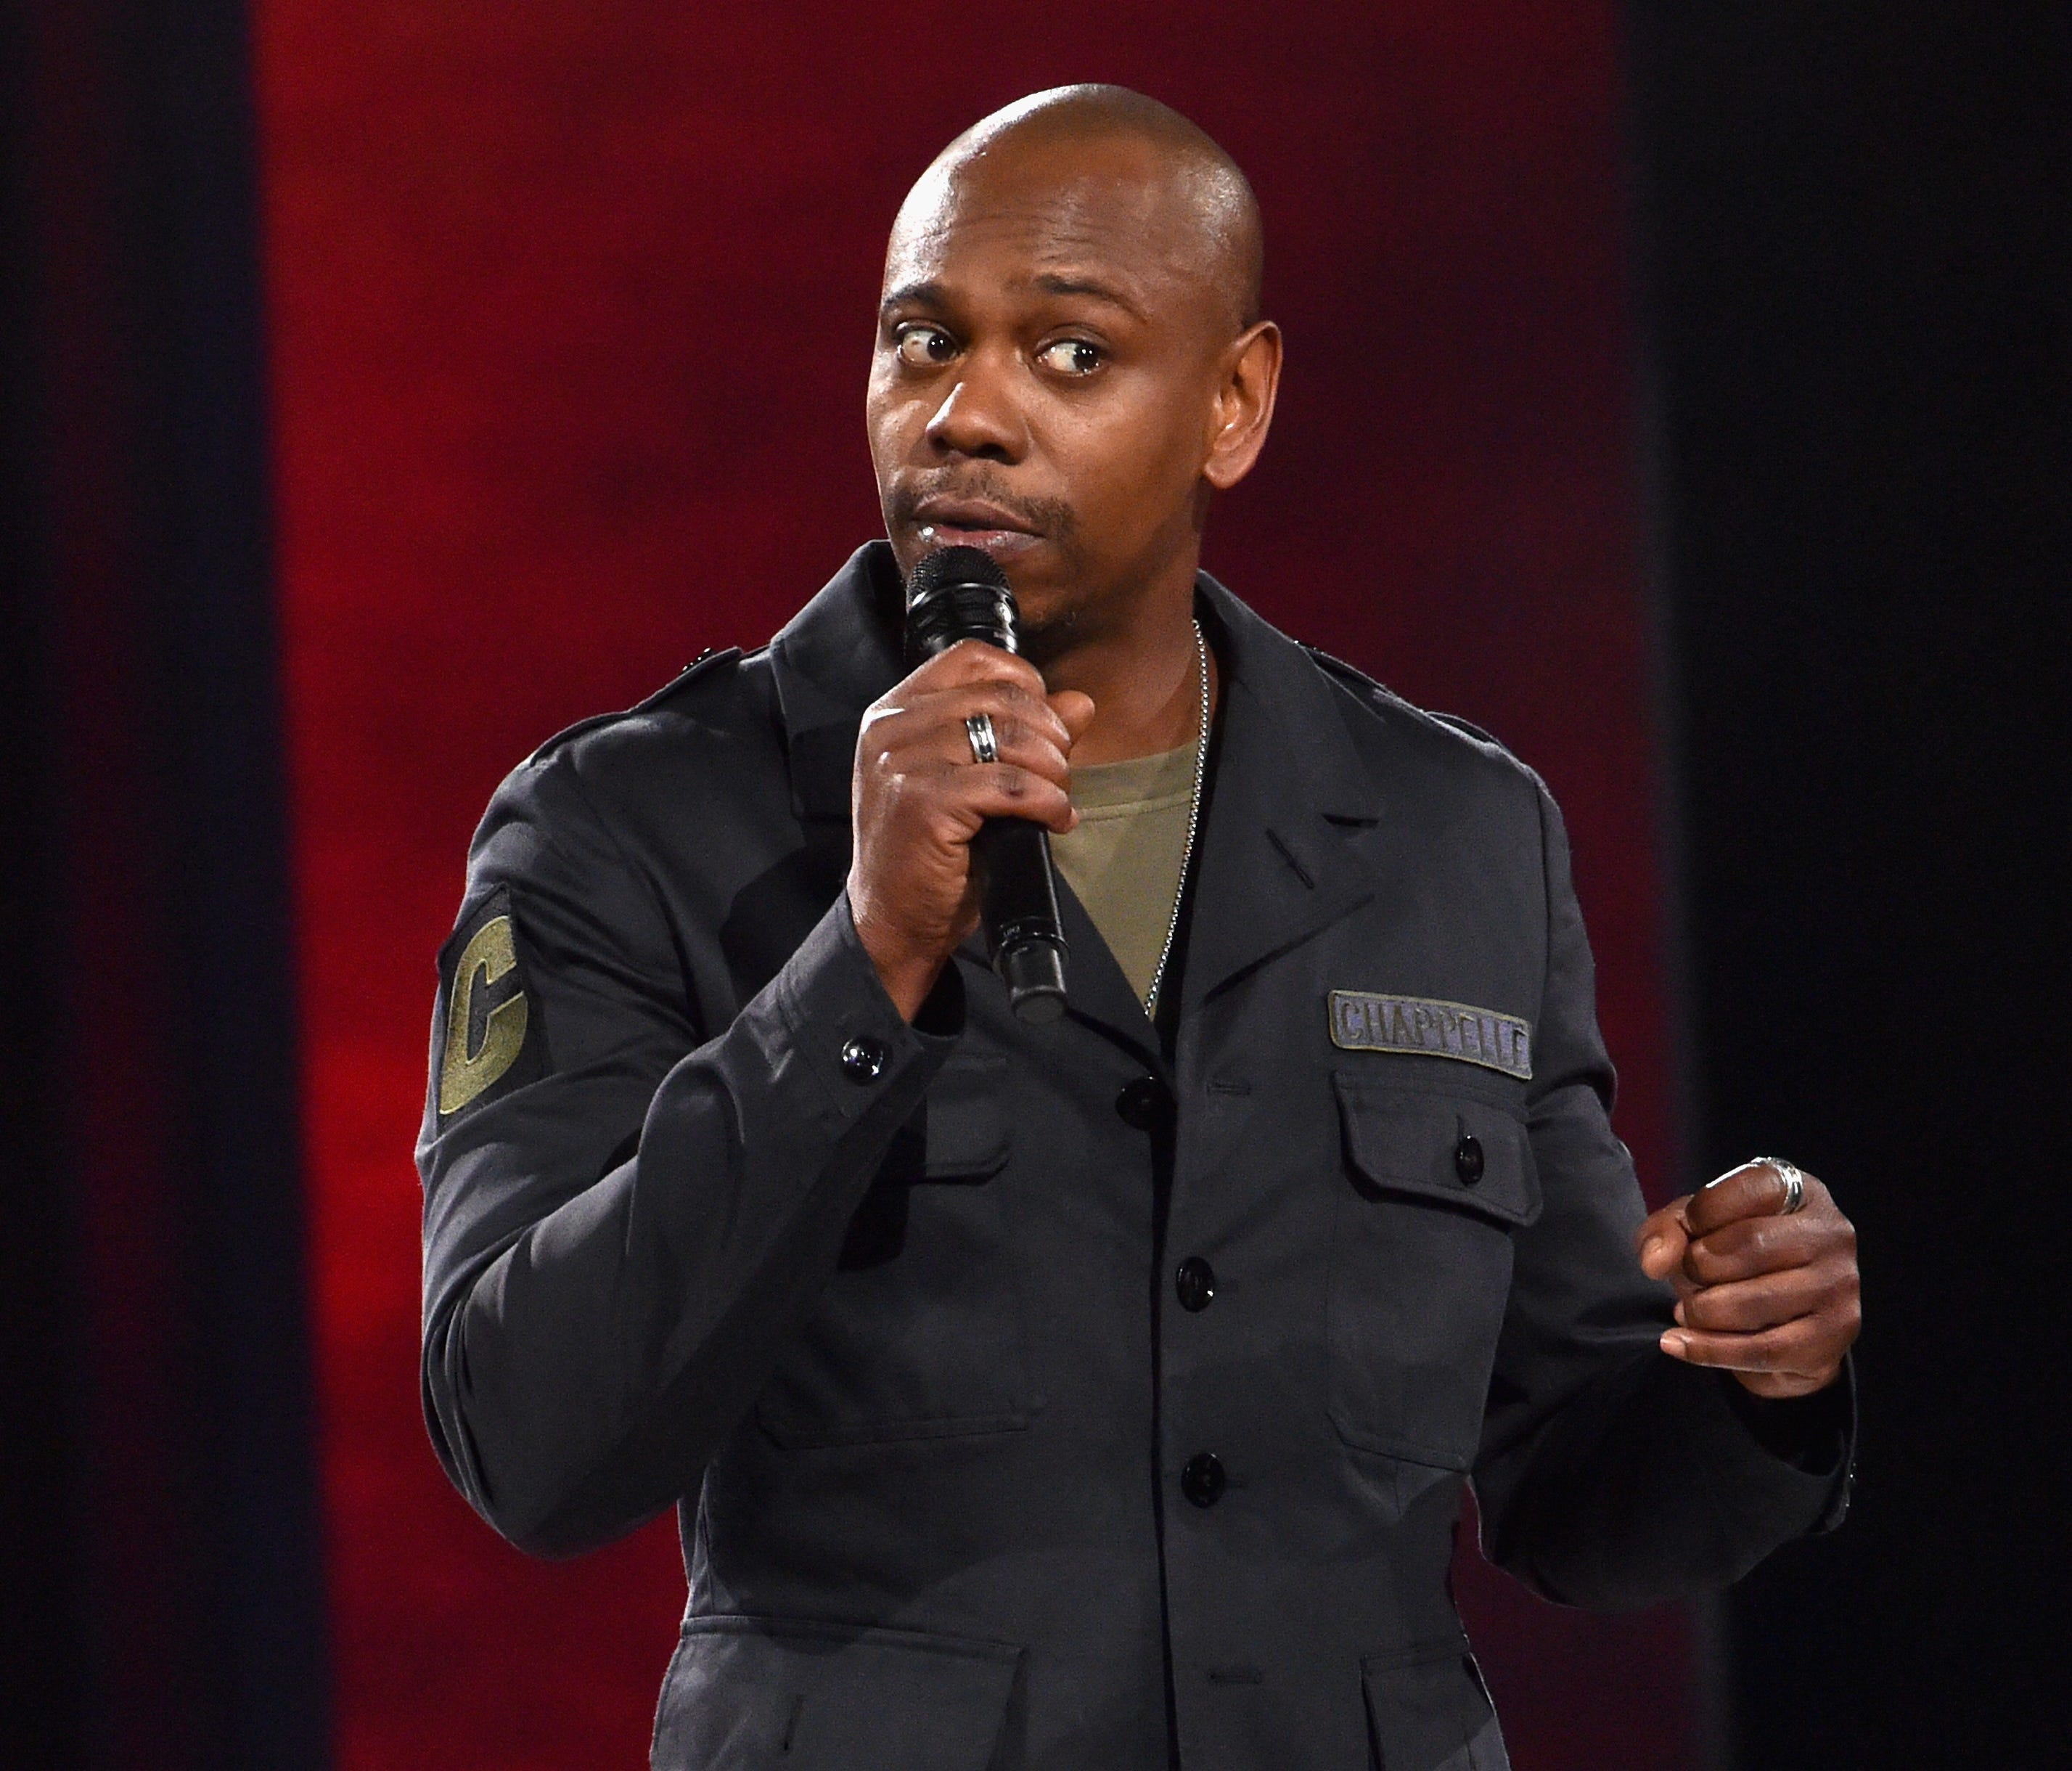 Dave Chappelle performs at the Hollywood Palladium on March 25, 2016. His set streams on Netflix Tuesday.